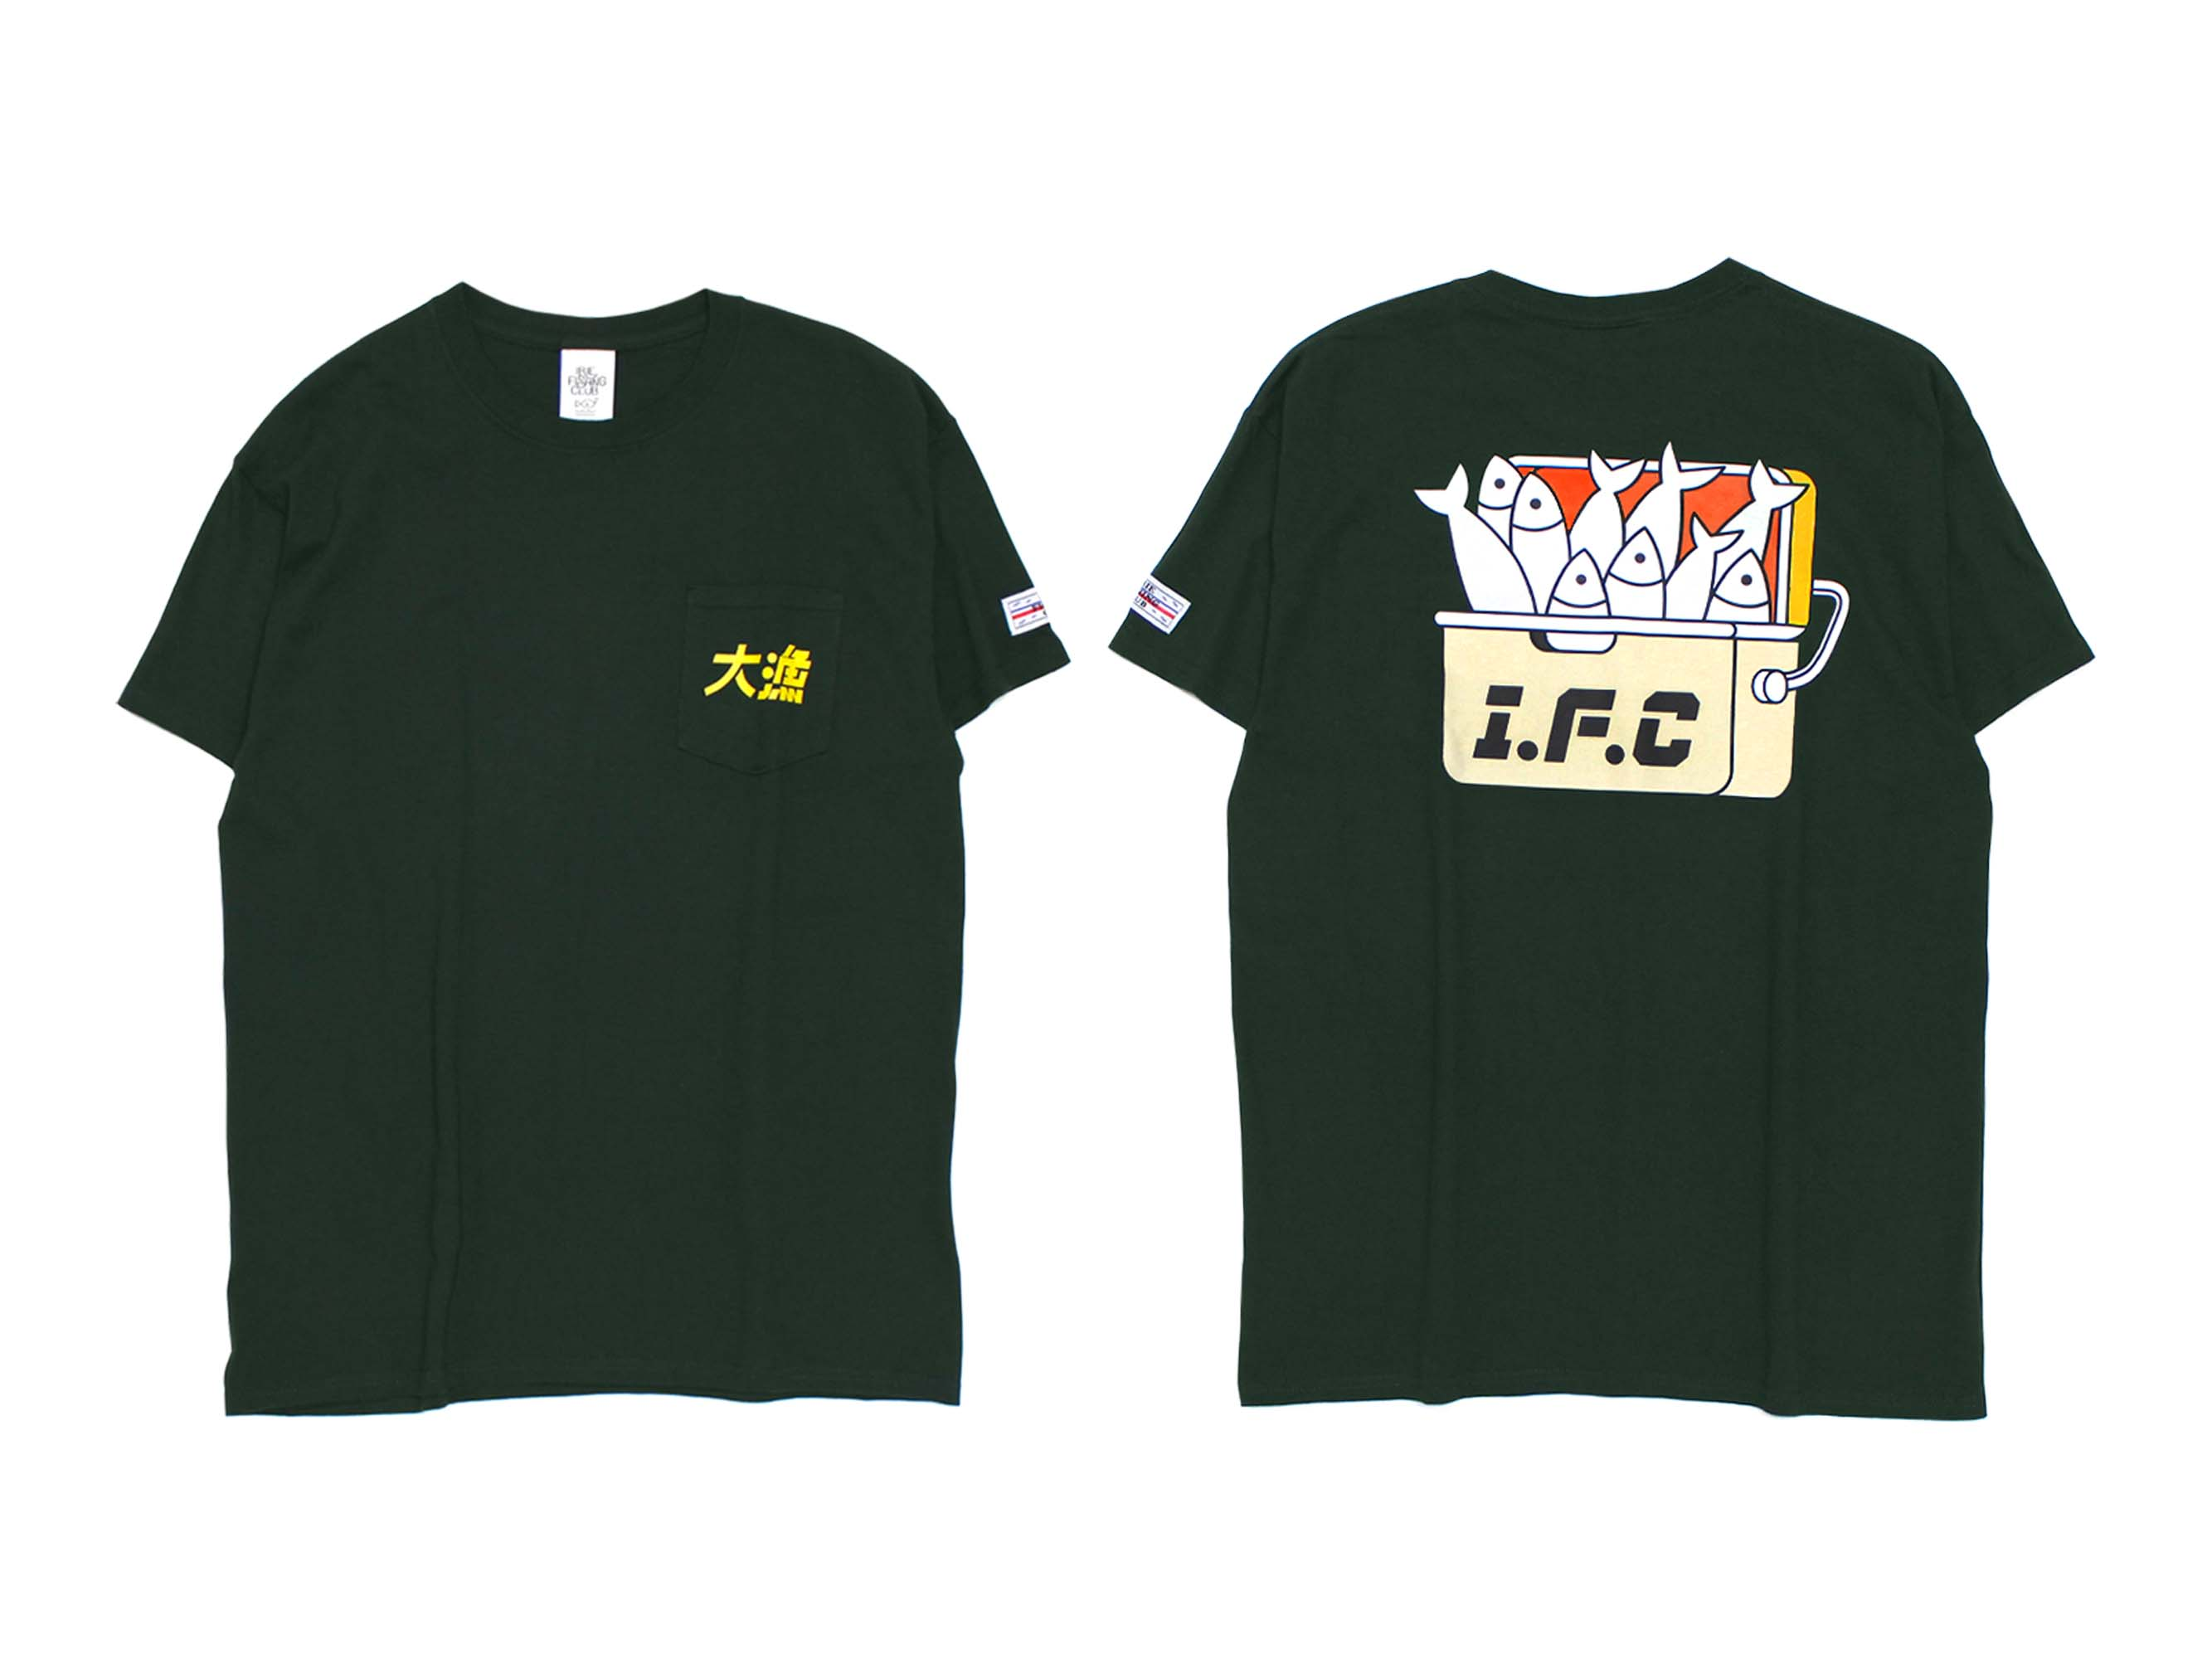 FULL OF COOLER TEE - IRIE FISHING CLUB